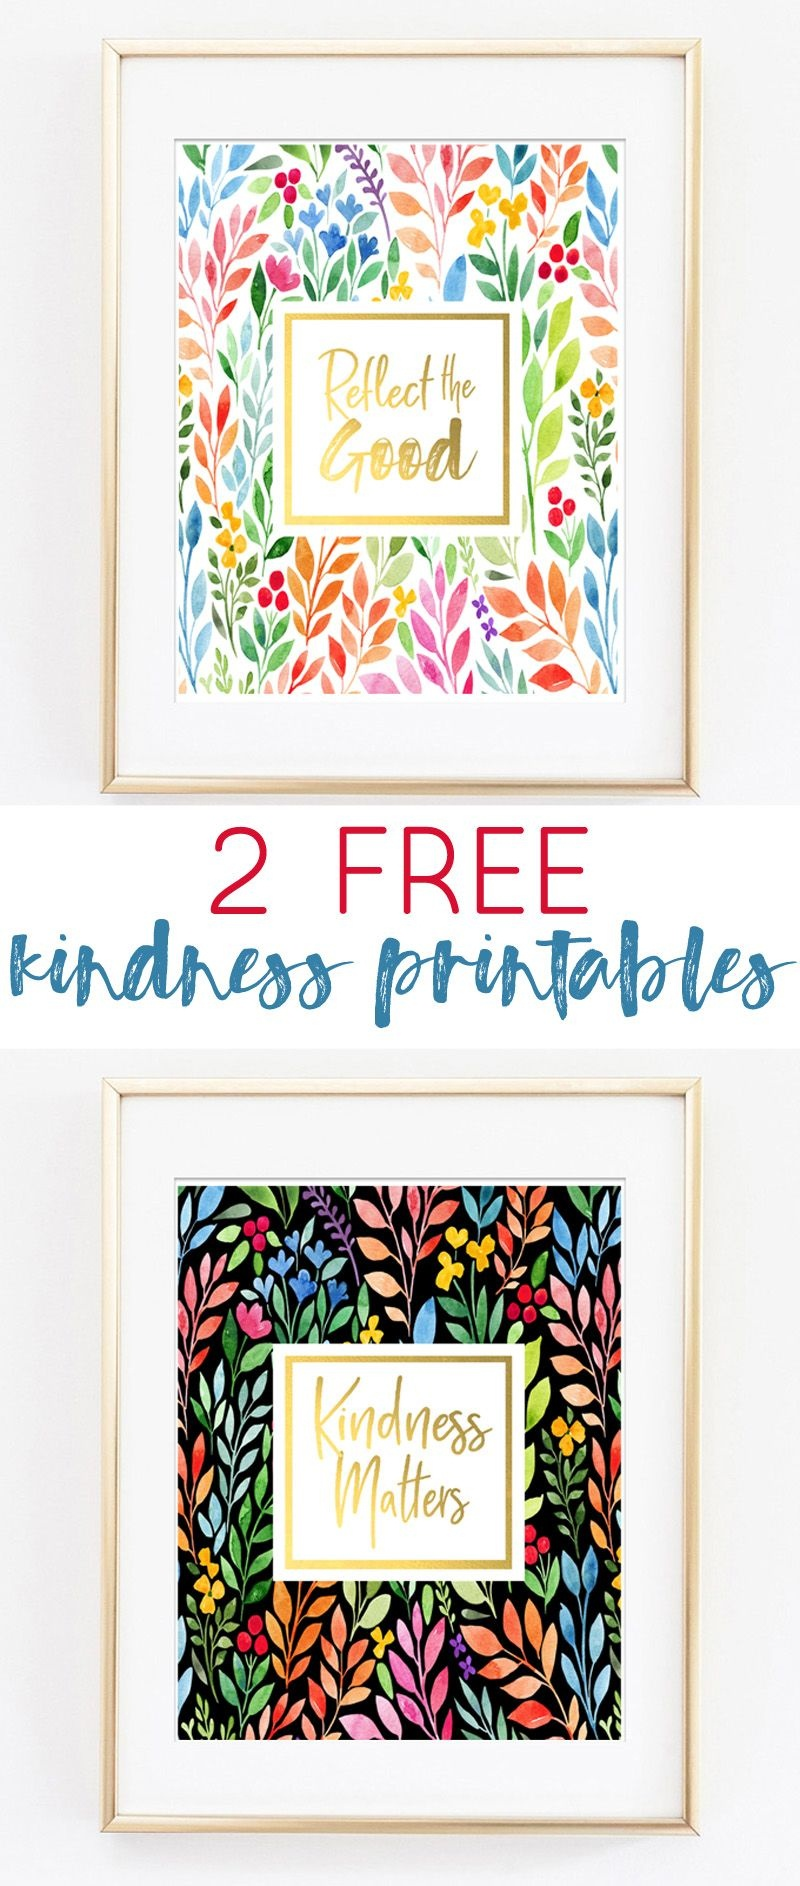 Kindness Matters {Free Printable Art} | Beautifully Printable | Free - Free Printable Decor